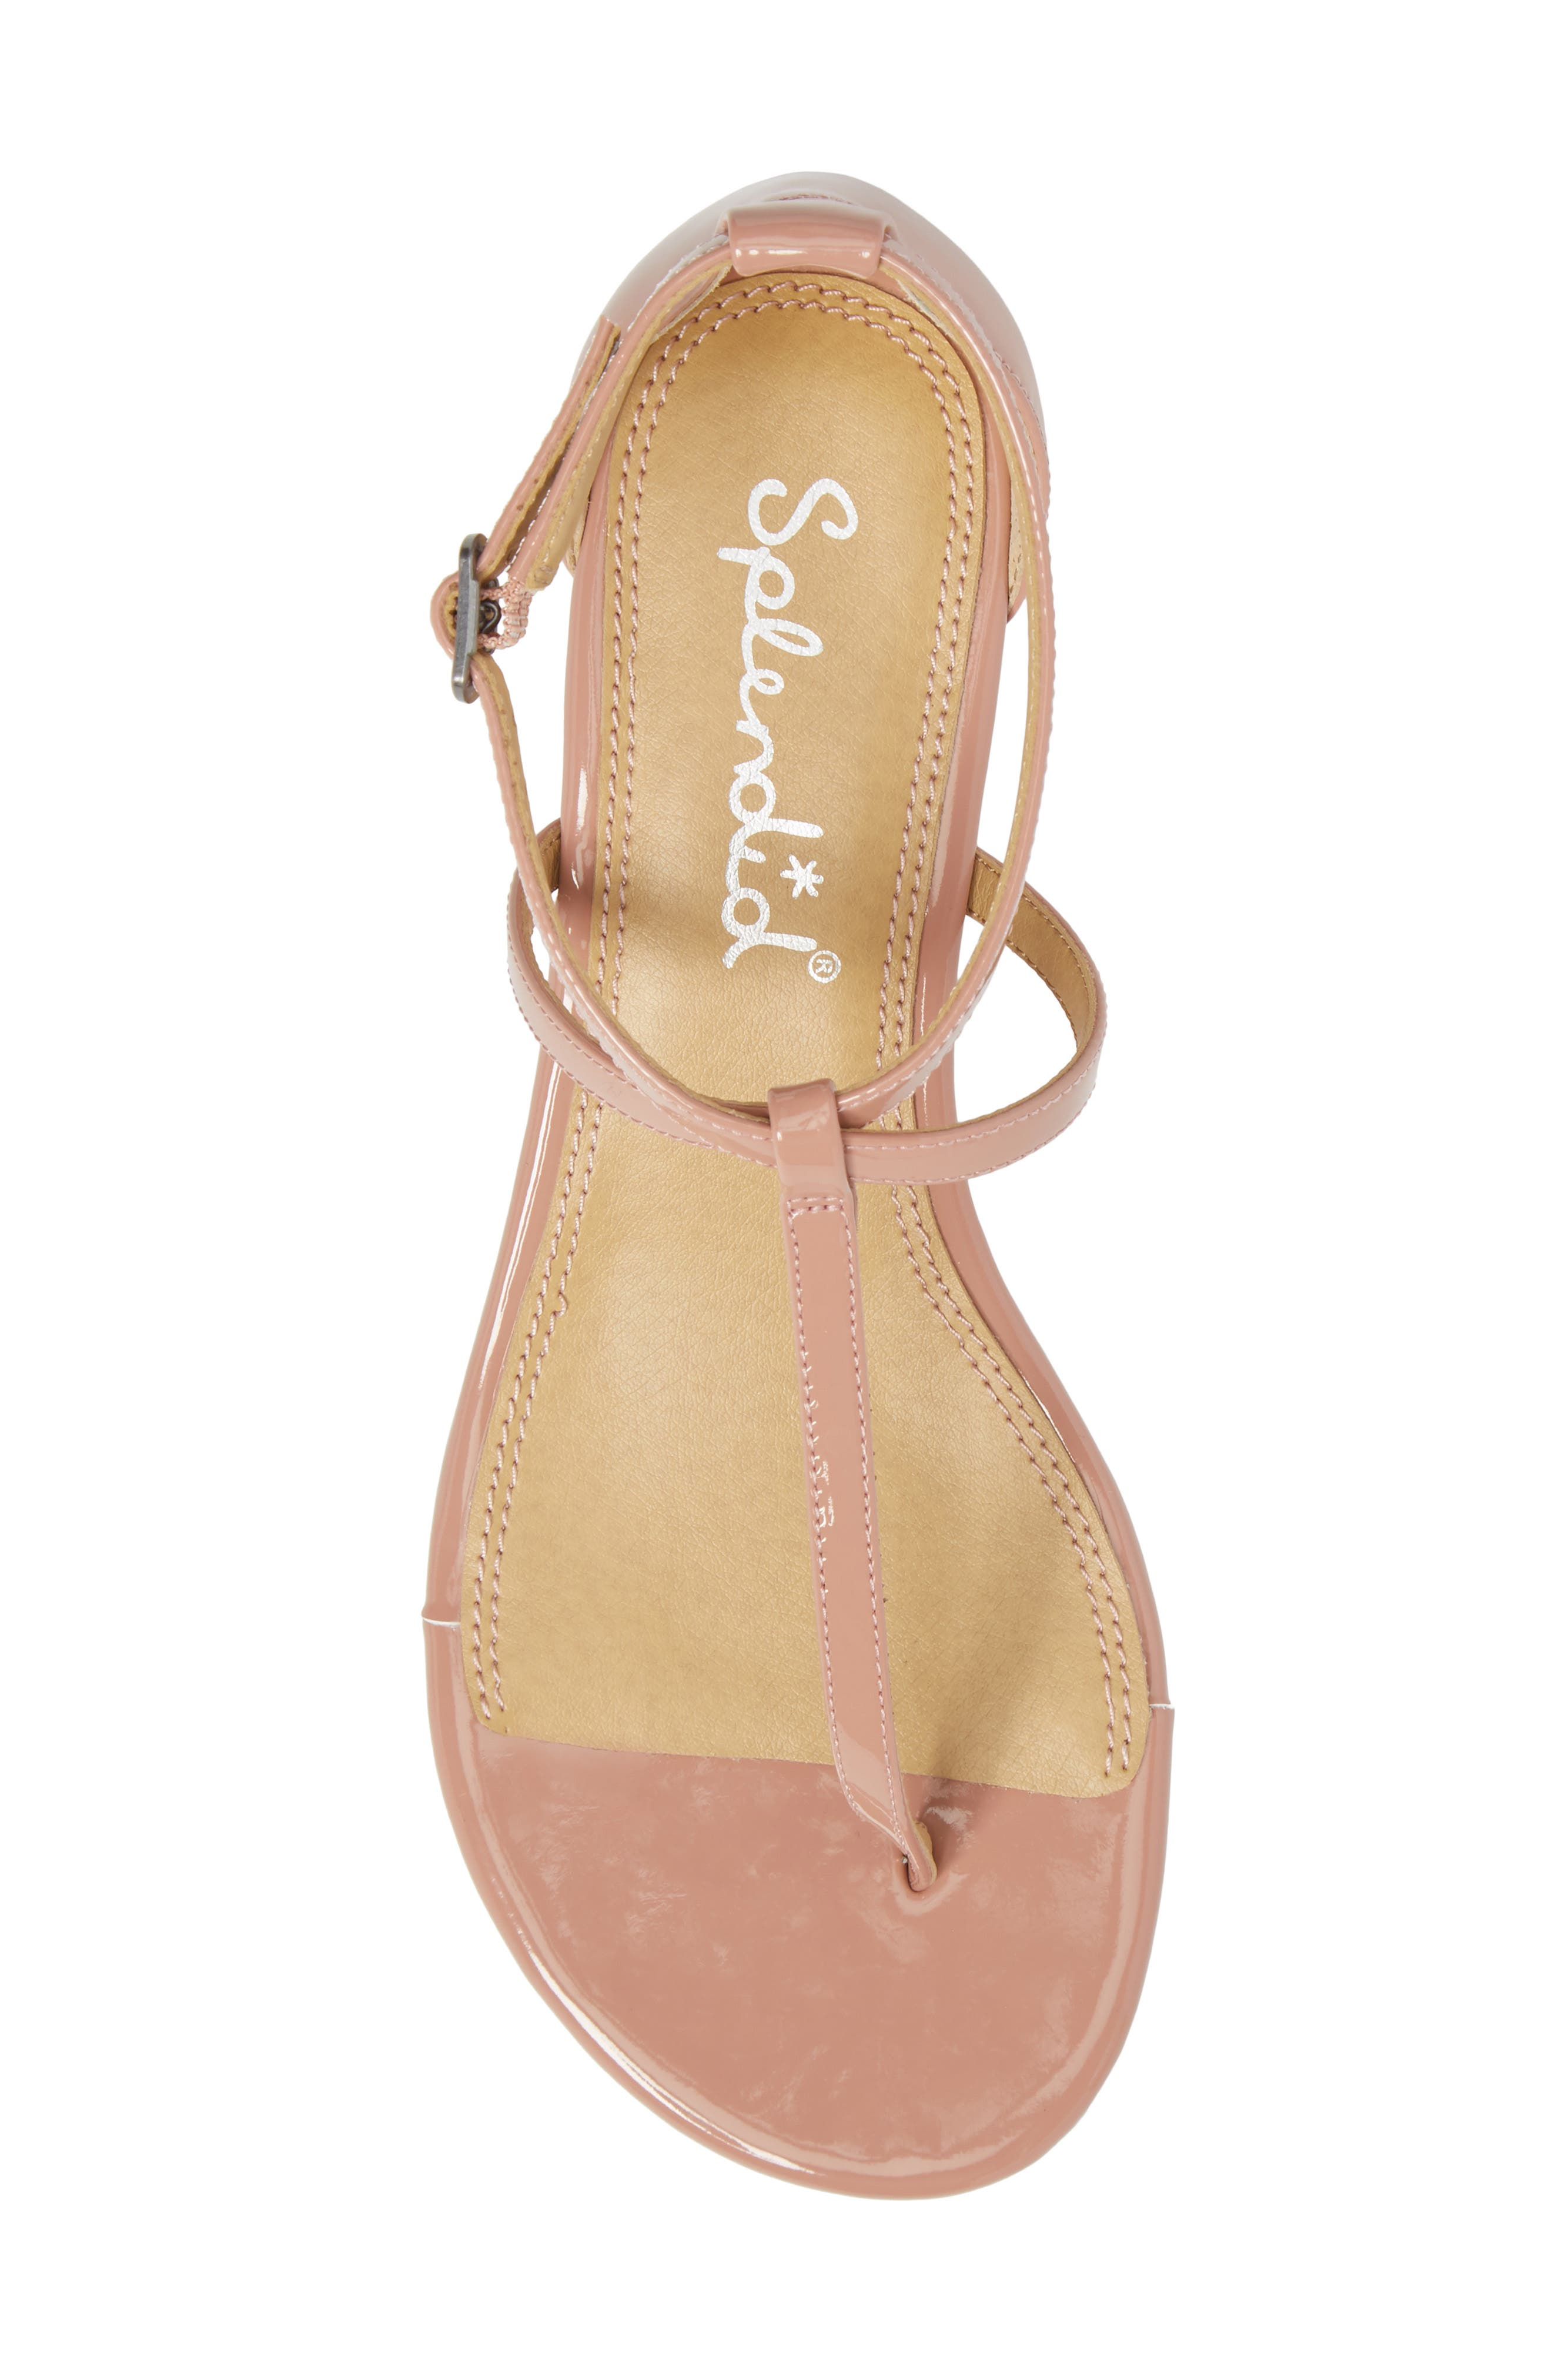 Bryce T-Strap Wedge Sandal,                             Alternate thumbnail 5, color,                             DARK BLUSH PATENT